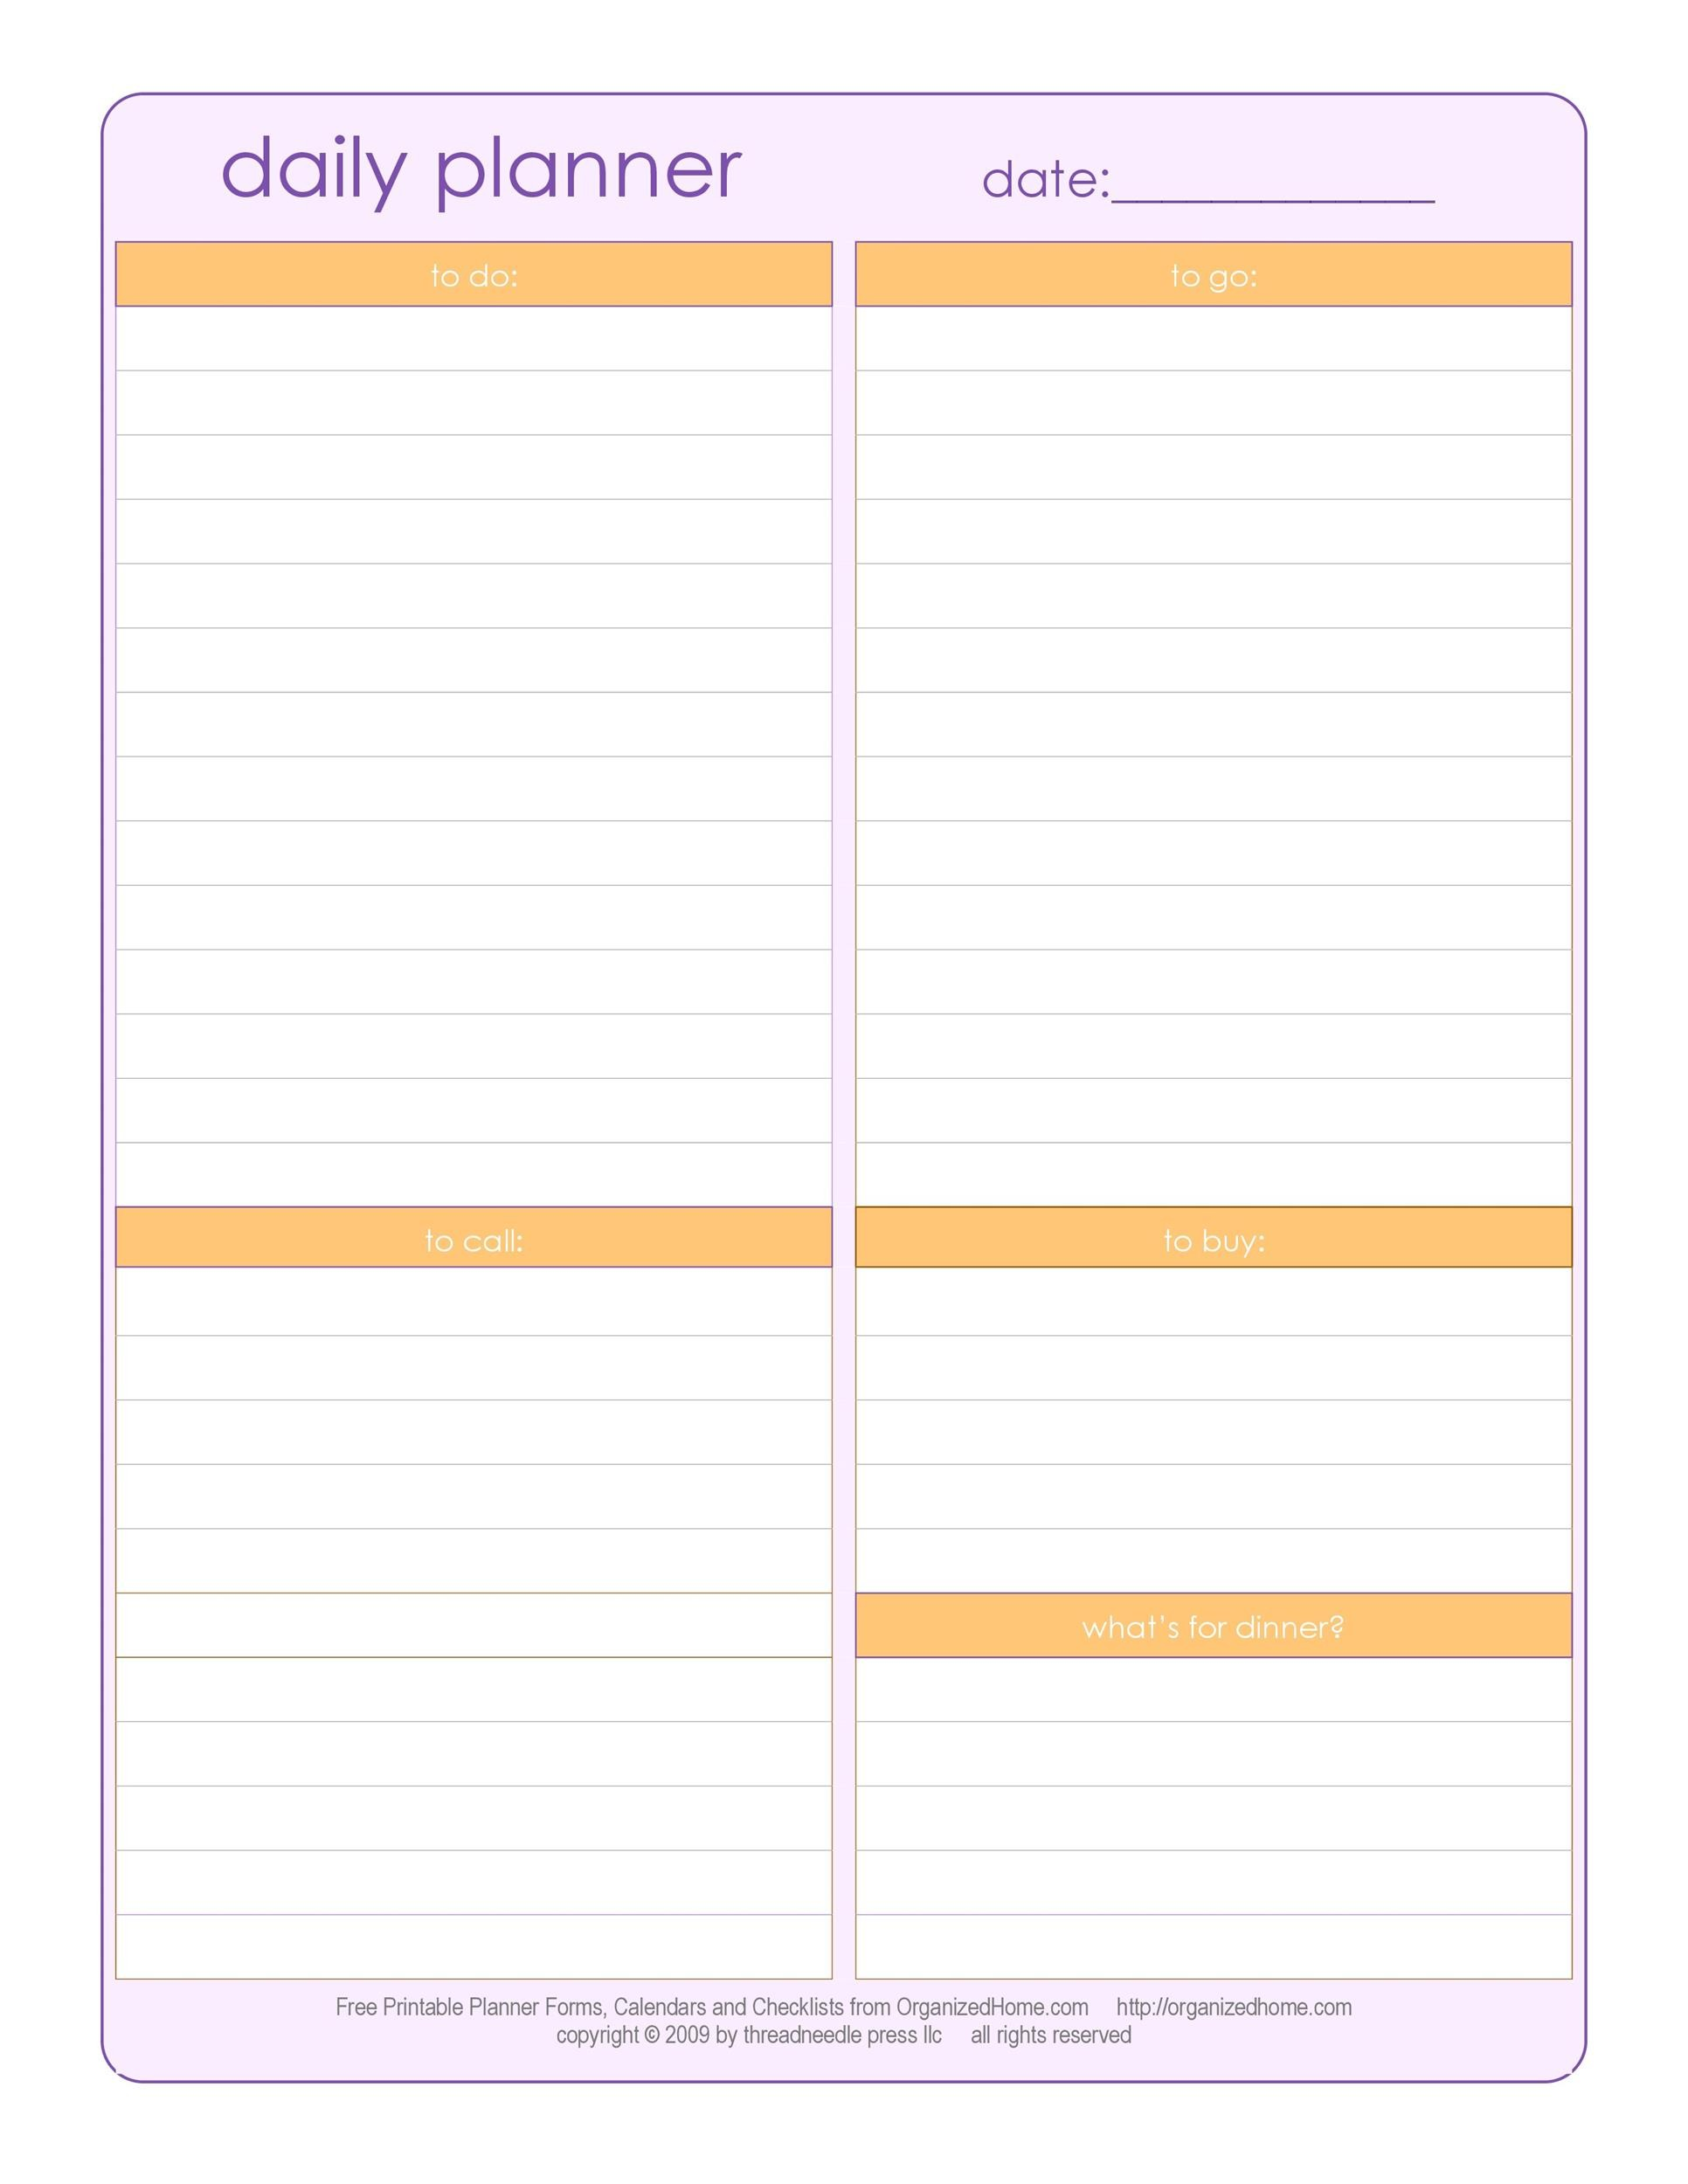 graphic regarding Daily Planner Printable named 40+ Printable Every day Planner Templates (Cost-free) ᐅ Template Lab